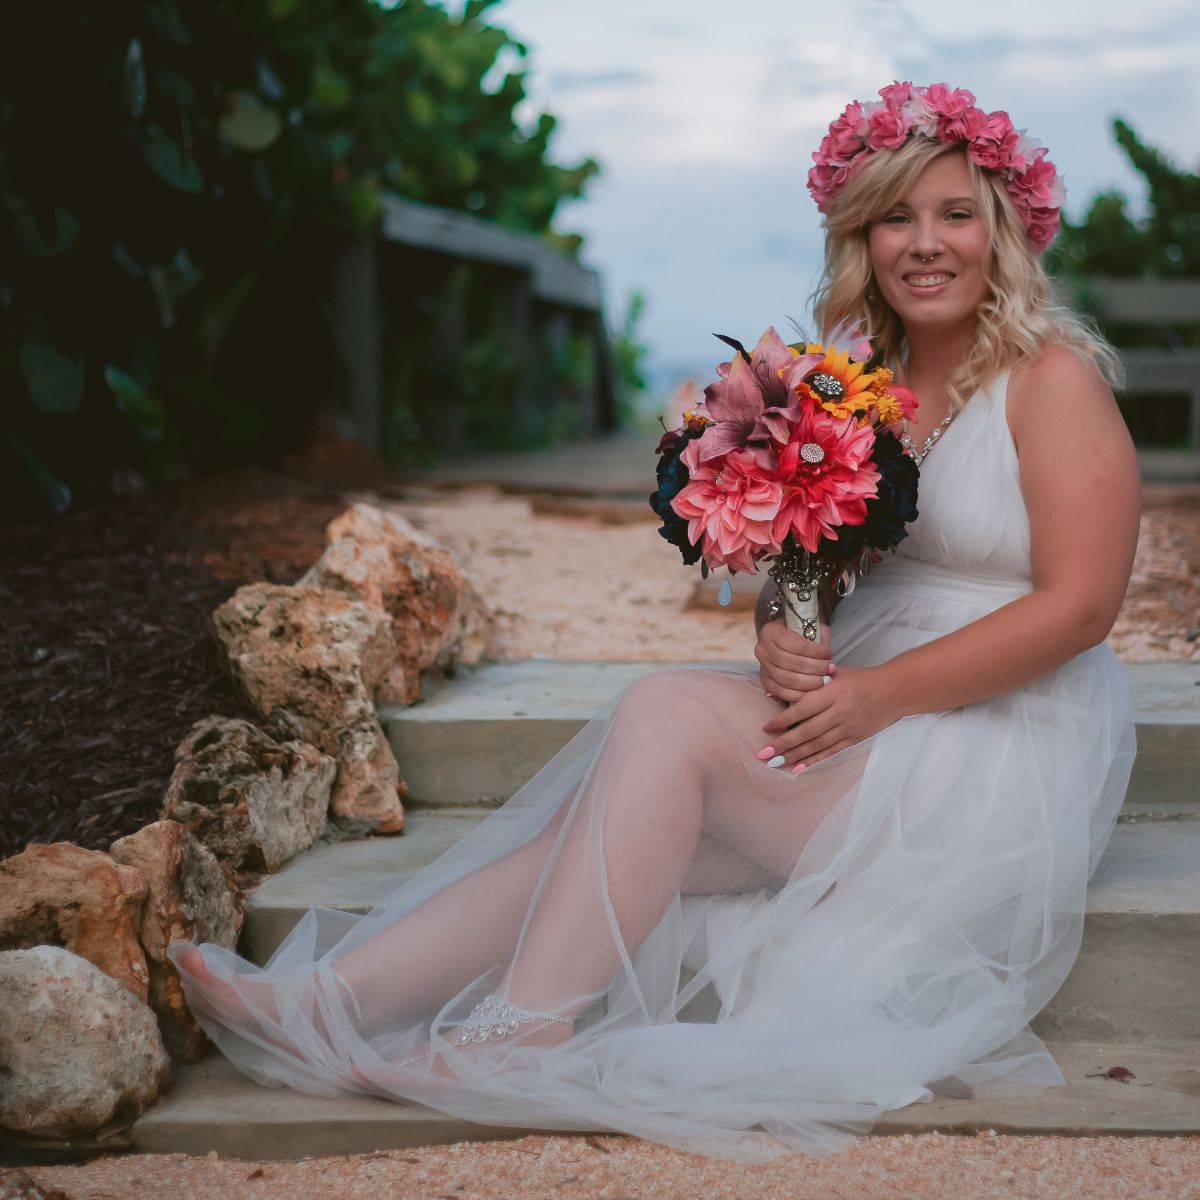 •PACKAGE 4 • $499 - 3 Hours Wedding Day CoverageEngagement Session